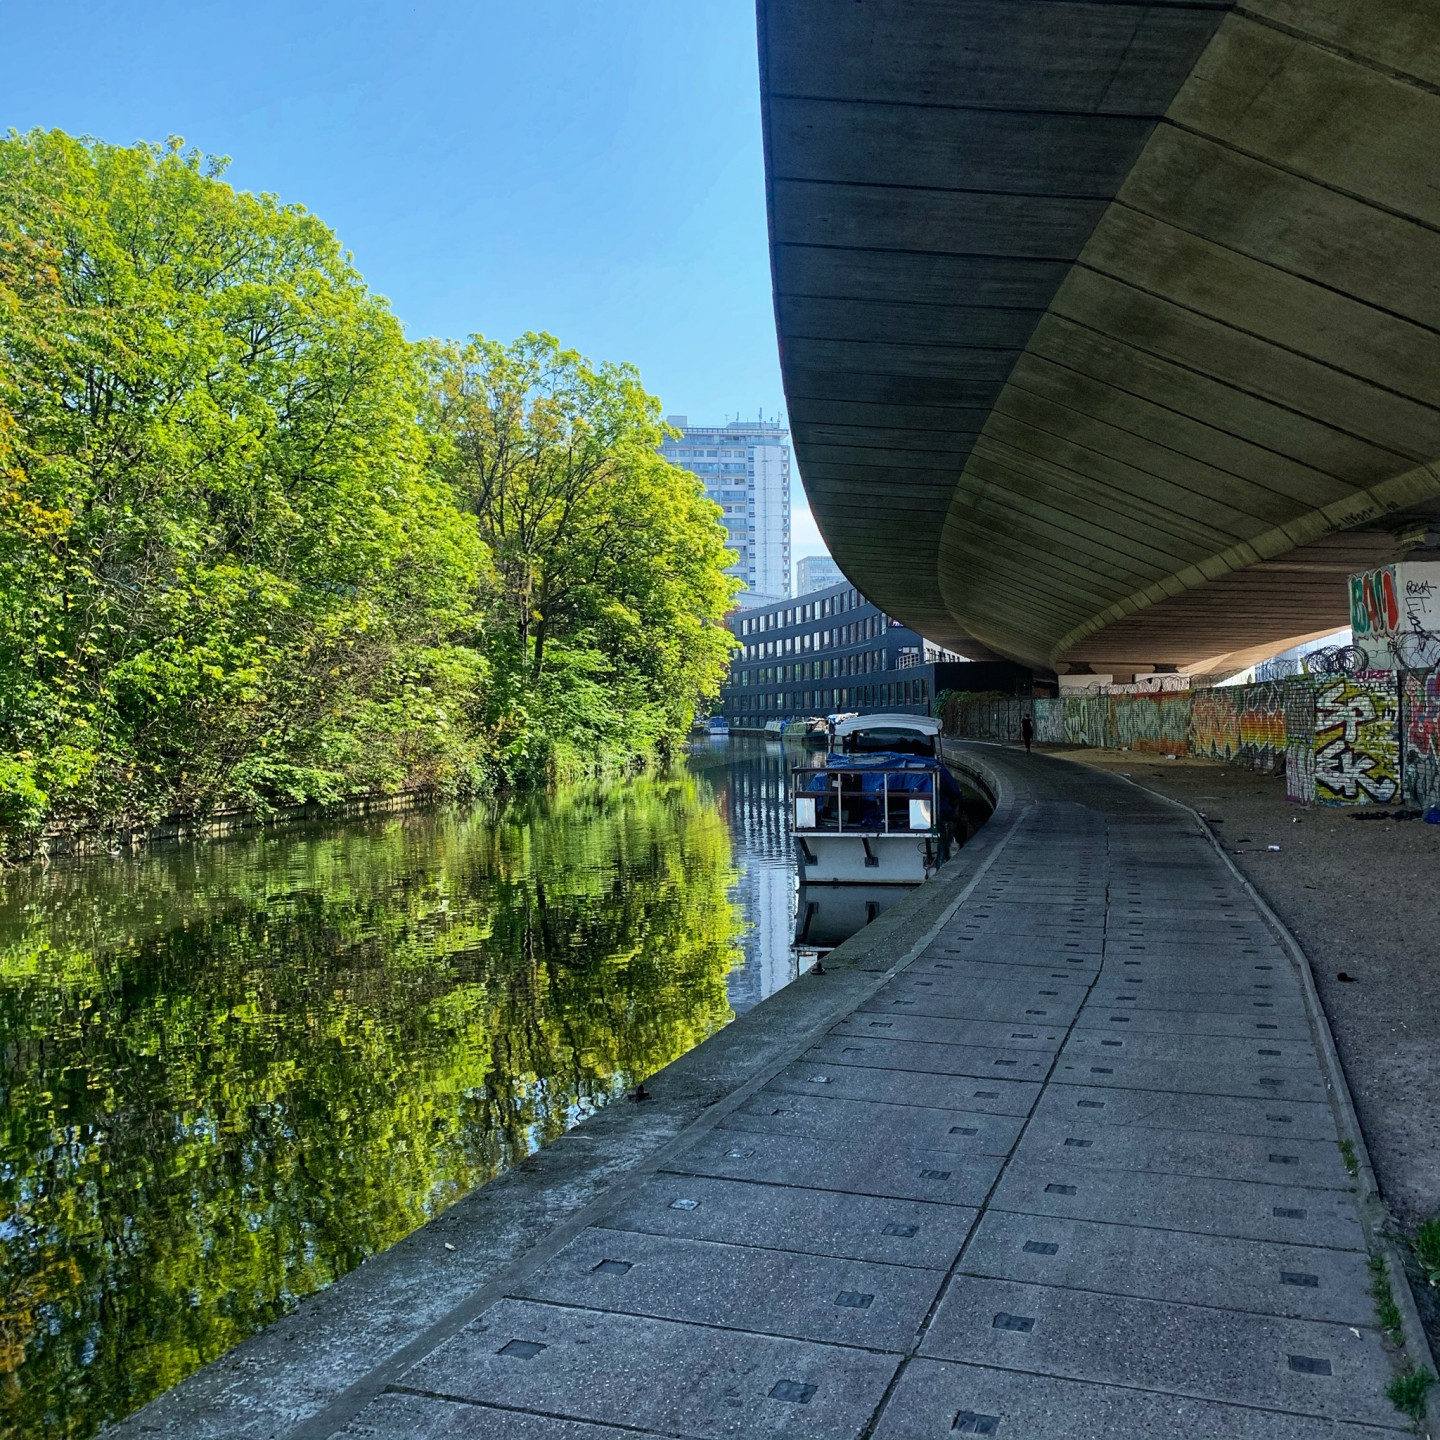 London, Regents Canal, 26 April © Andrew Curley